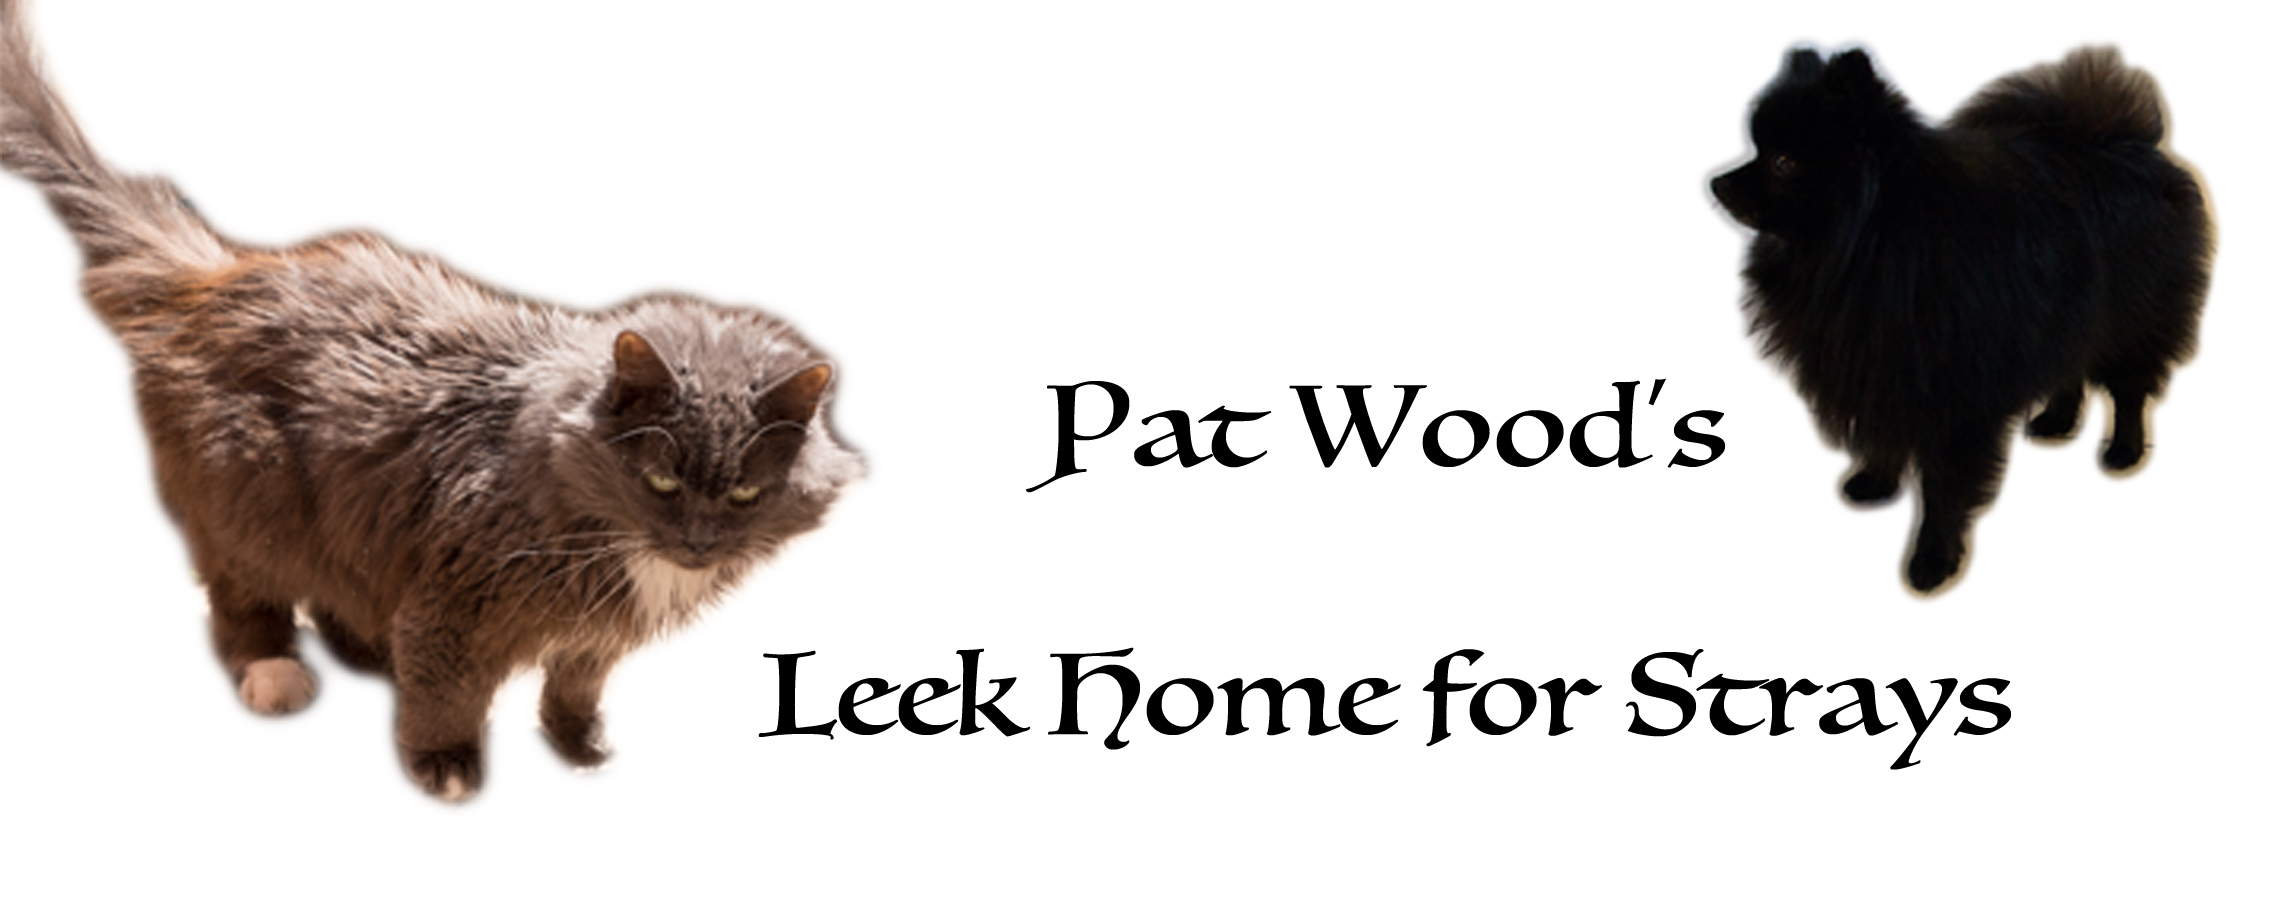 founded by Pat wood m.b.e.